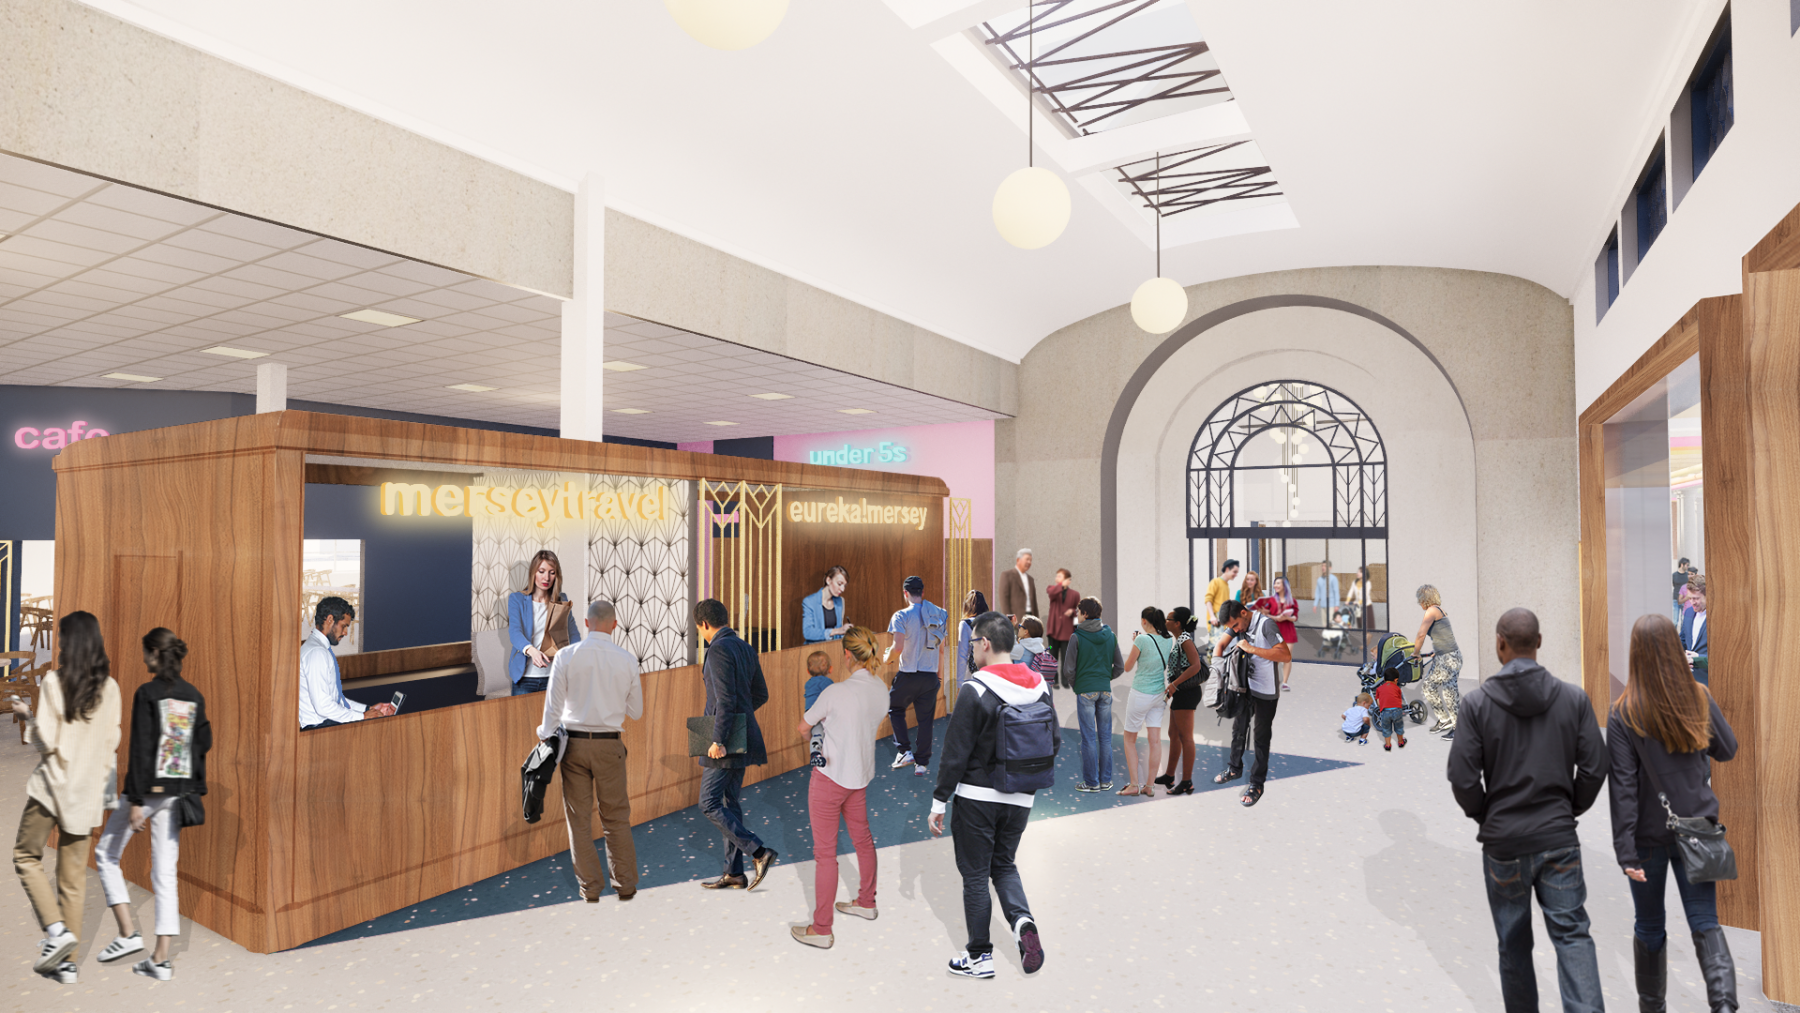 New ticket office interior